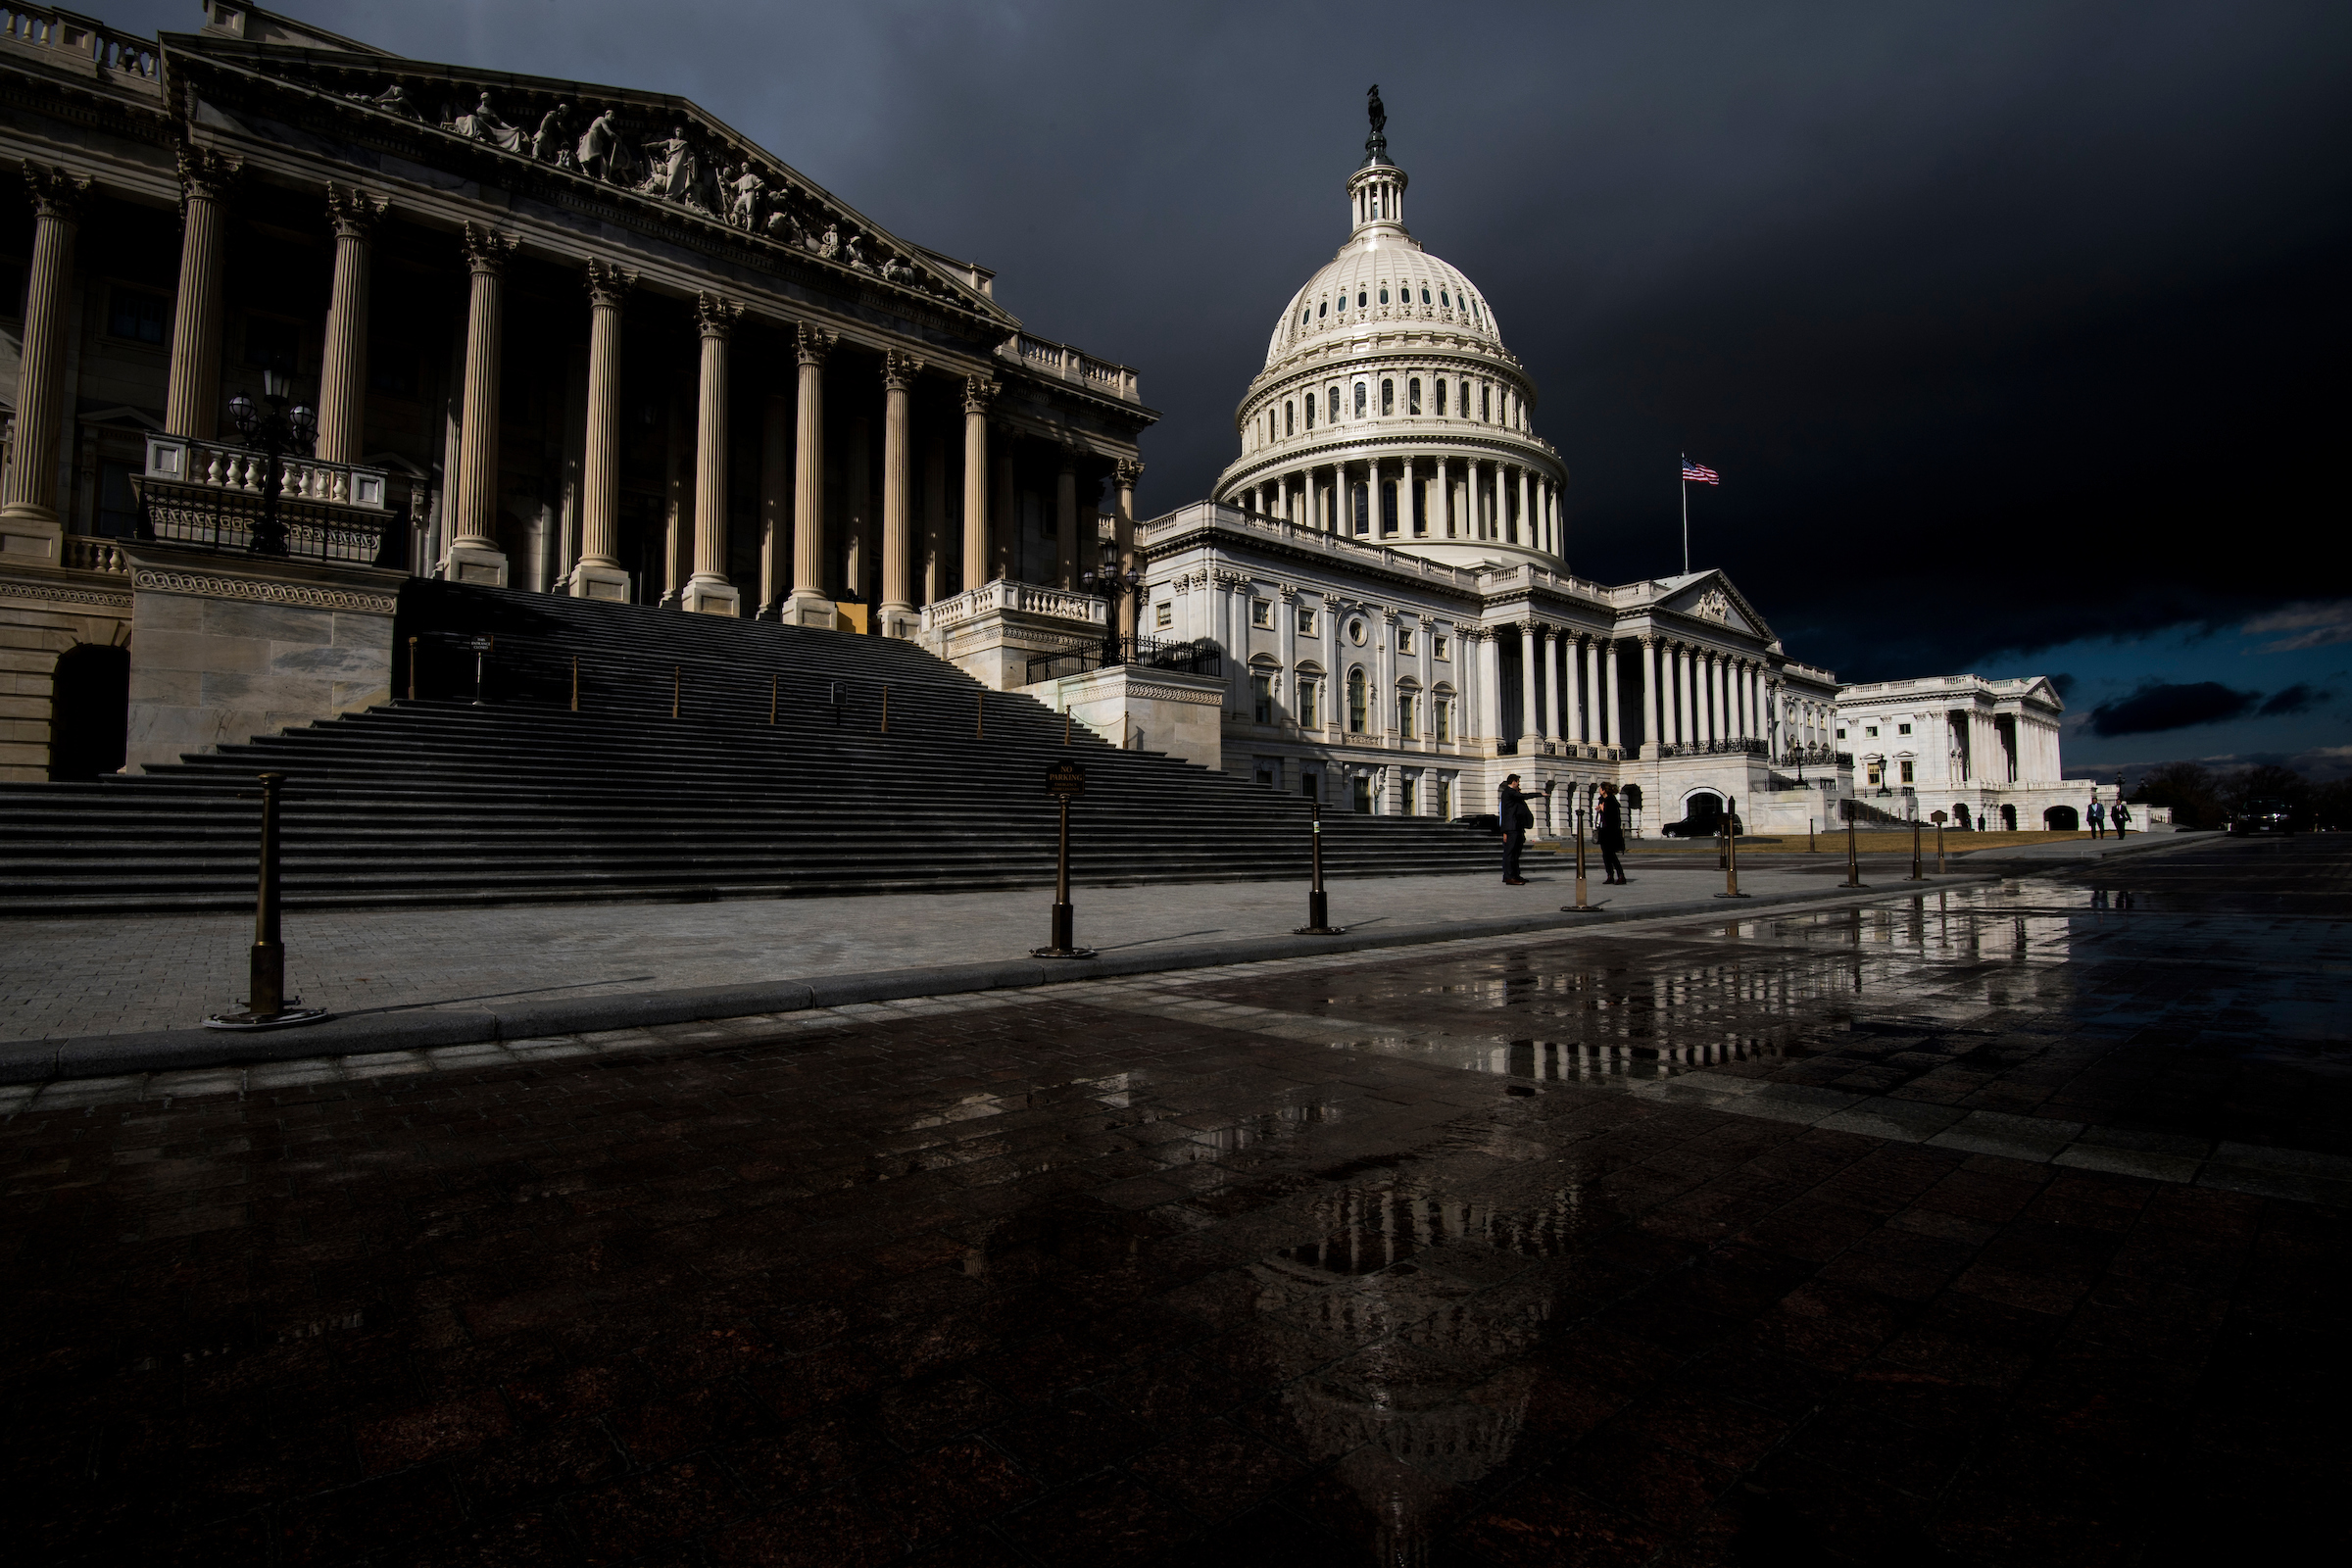 Storm clouds pass over the dome of the U.S. Capitol building on Tuesday. (Bill Clark/CQ Roll Call)